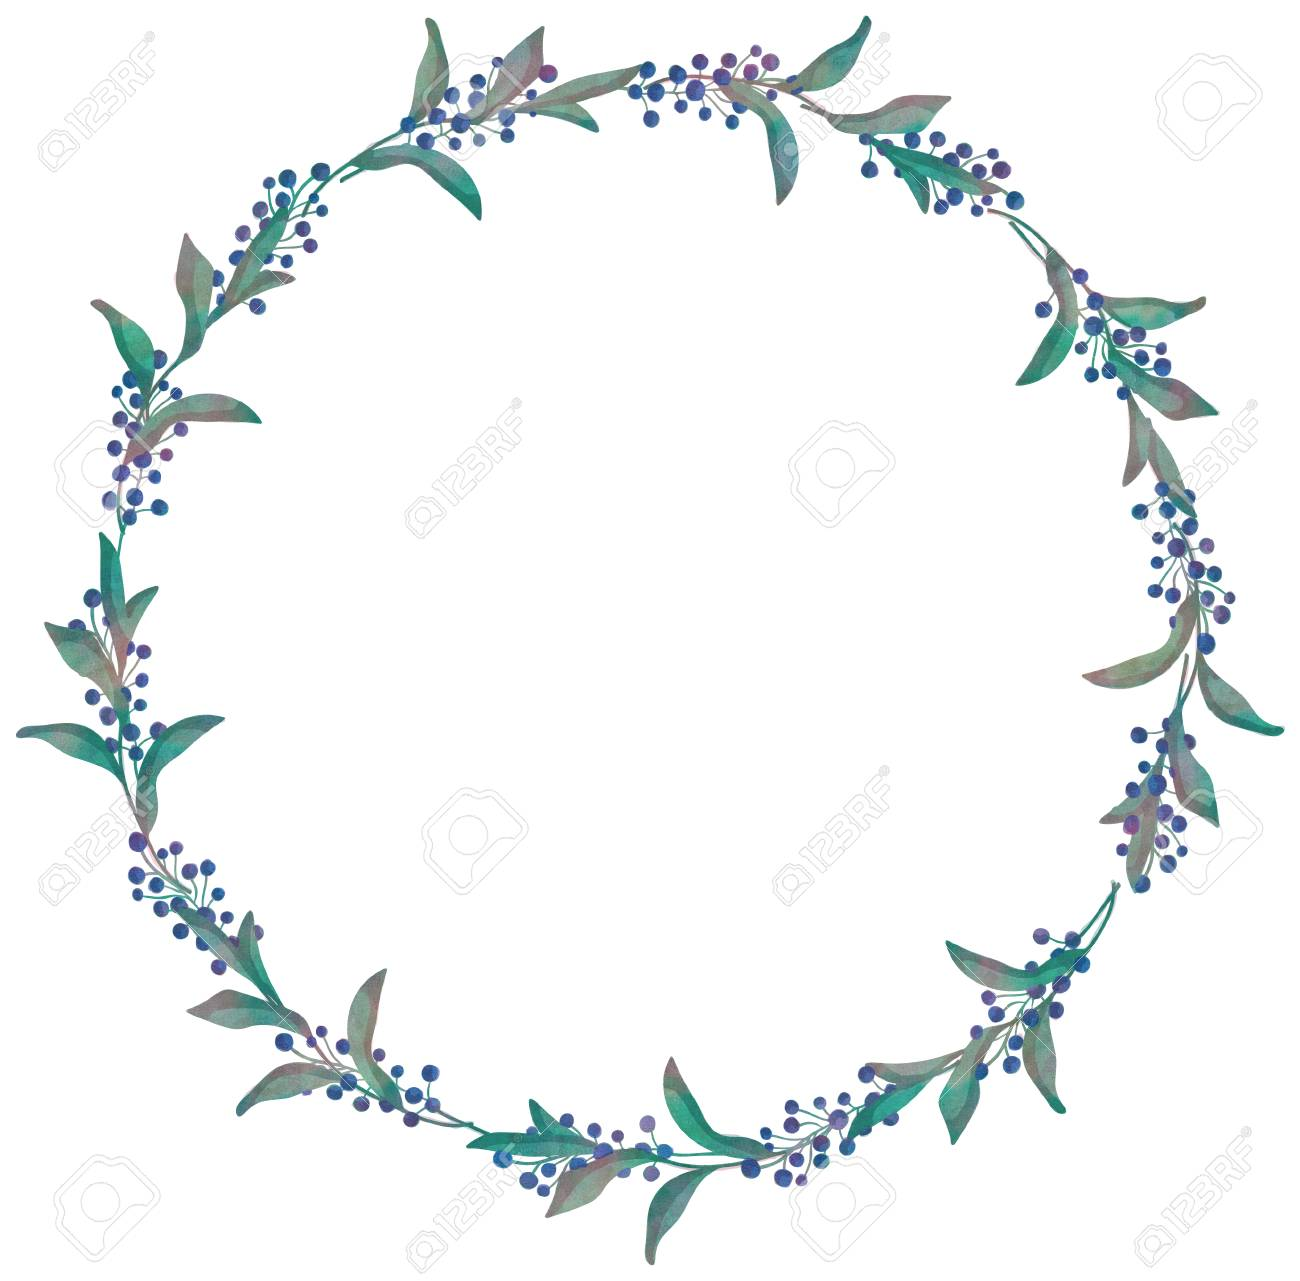 Drawn Watercolor Greenery Wreath Vector Illustration Stock